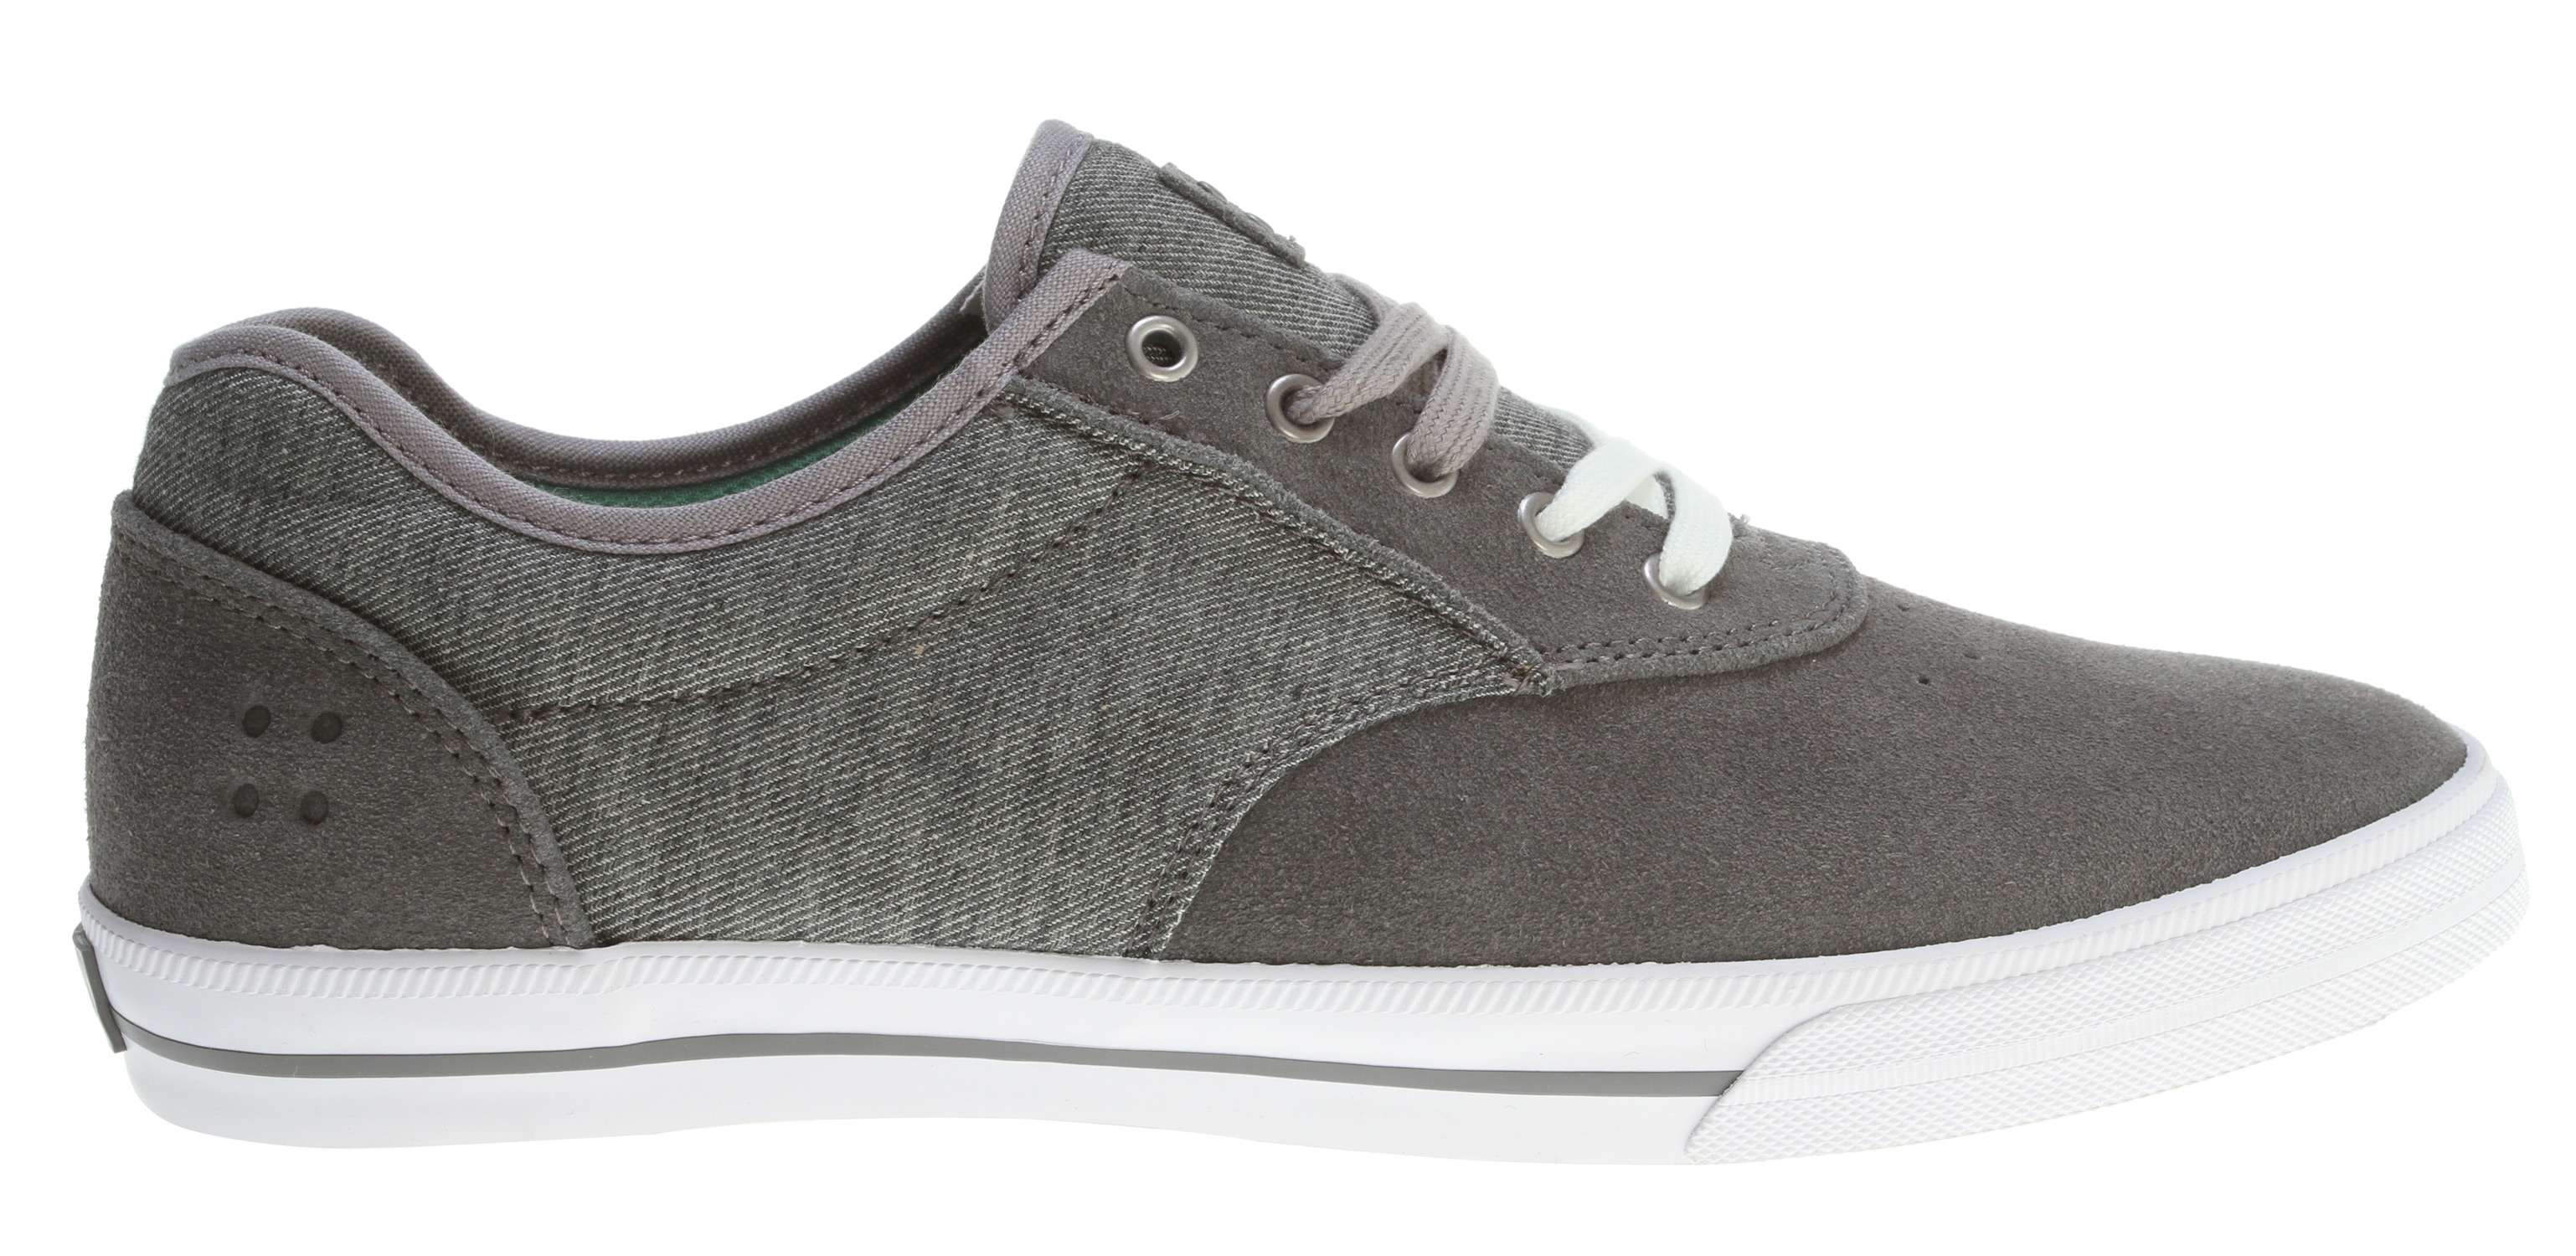 Skateboard Key Features of the Gravis Arto Skate Shoes: Premium Suede And Canvas Upper Poron Foam Is Loaded Inside The Sole Cloud 9 PU Footbed Breathable Mesh Lining High Traction Rubber Outsole Two Laces - $48.95